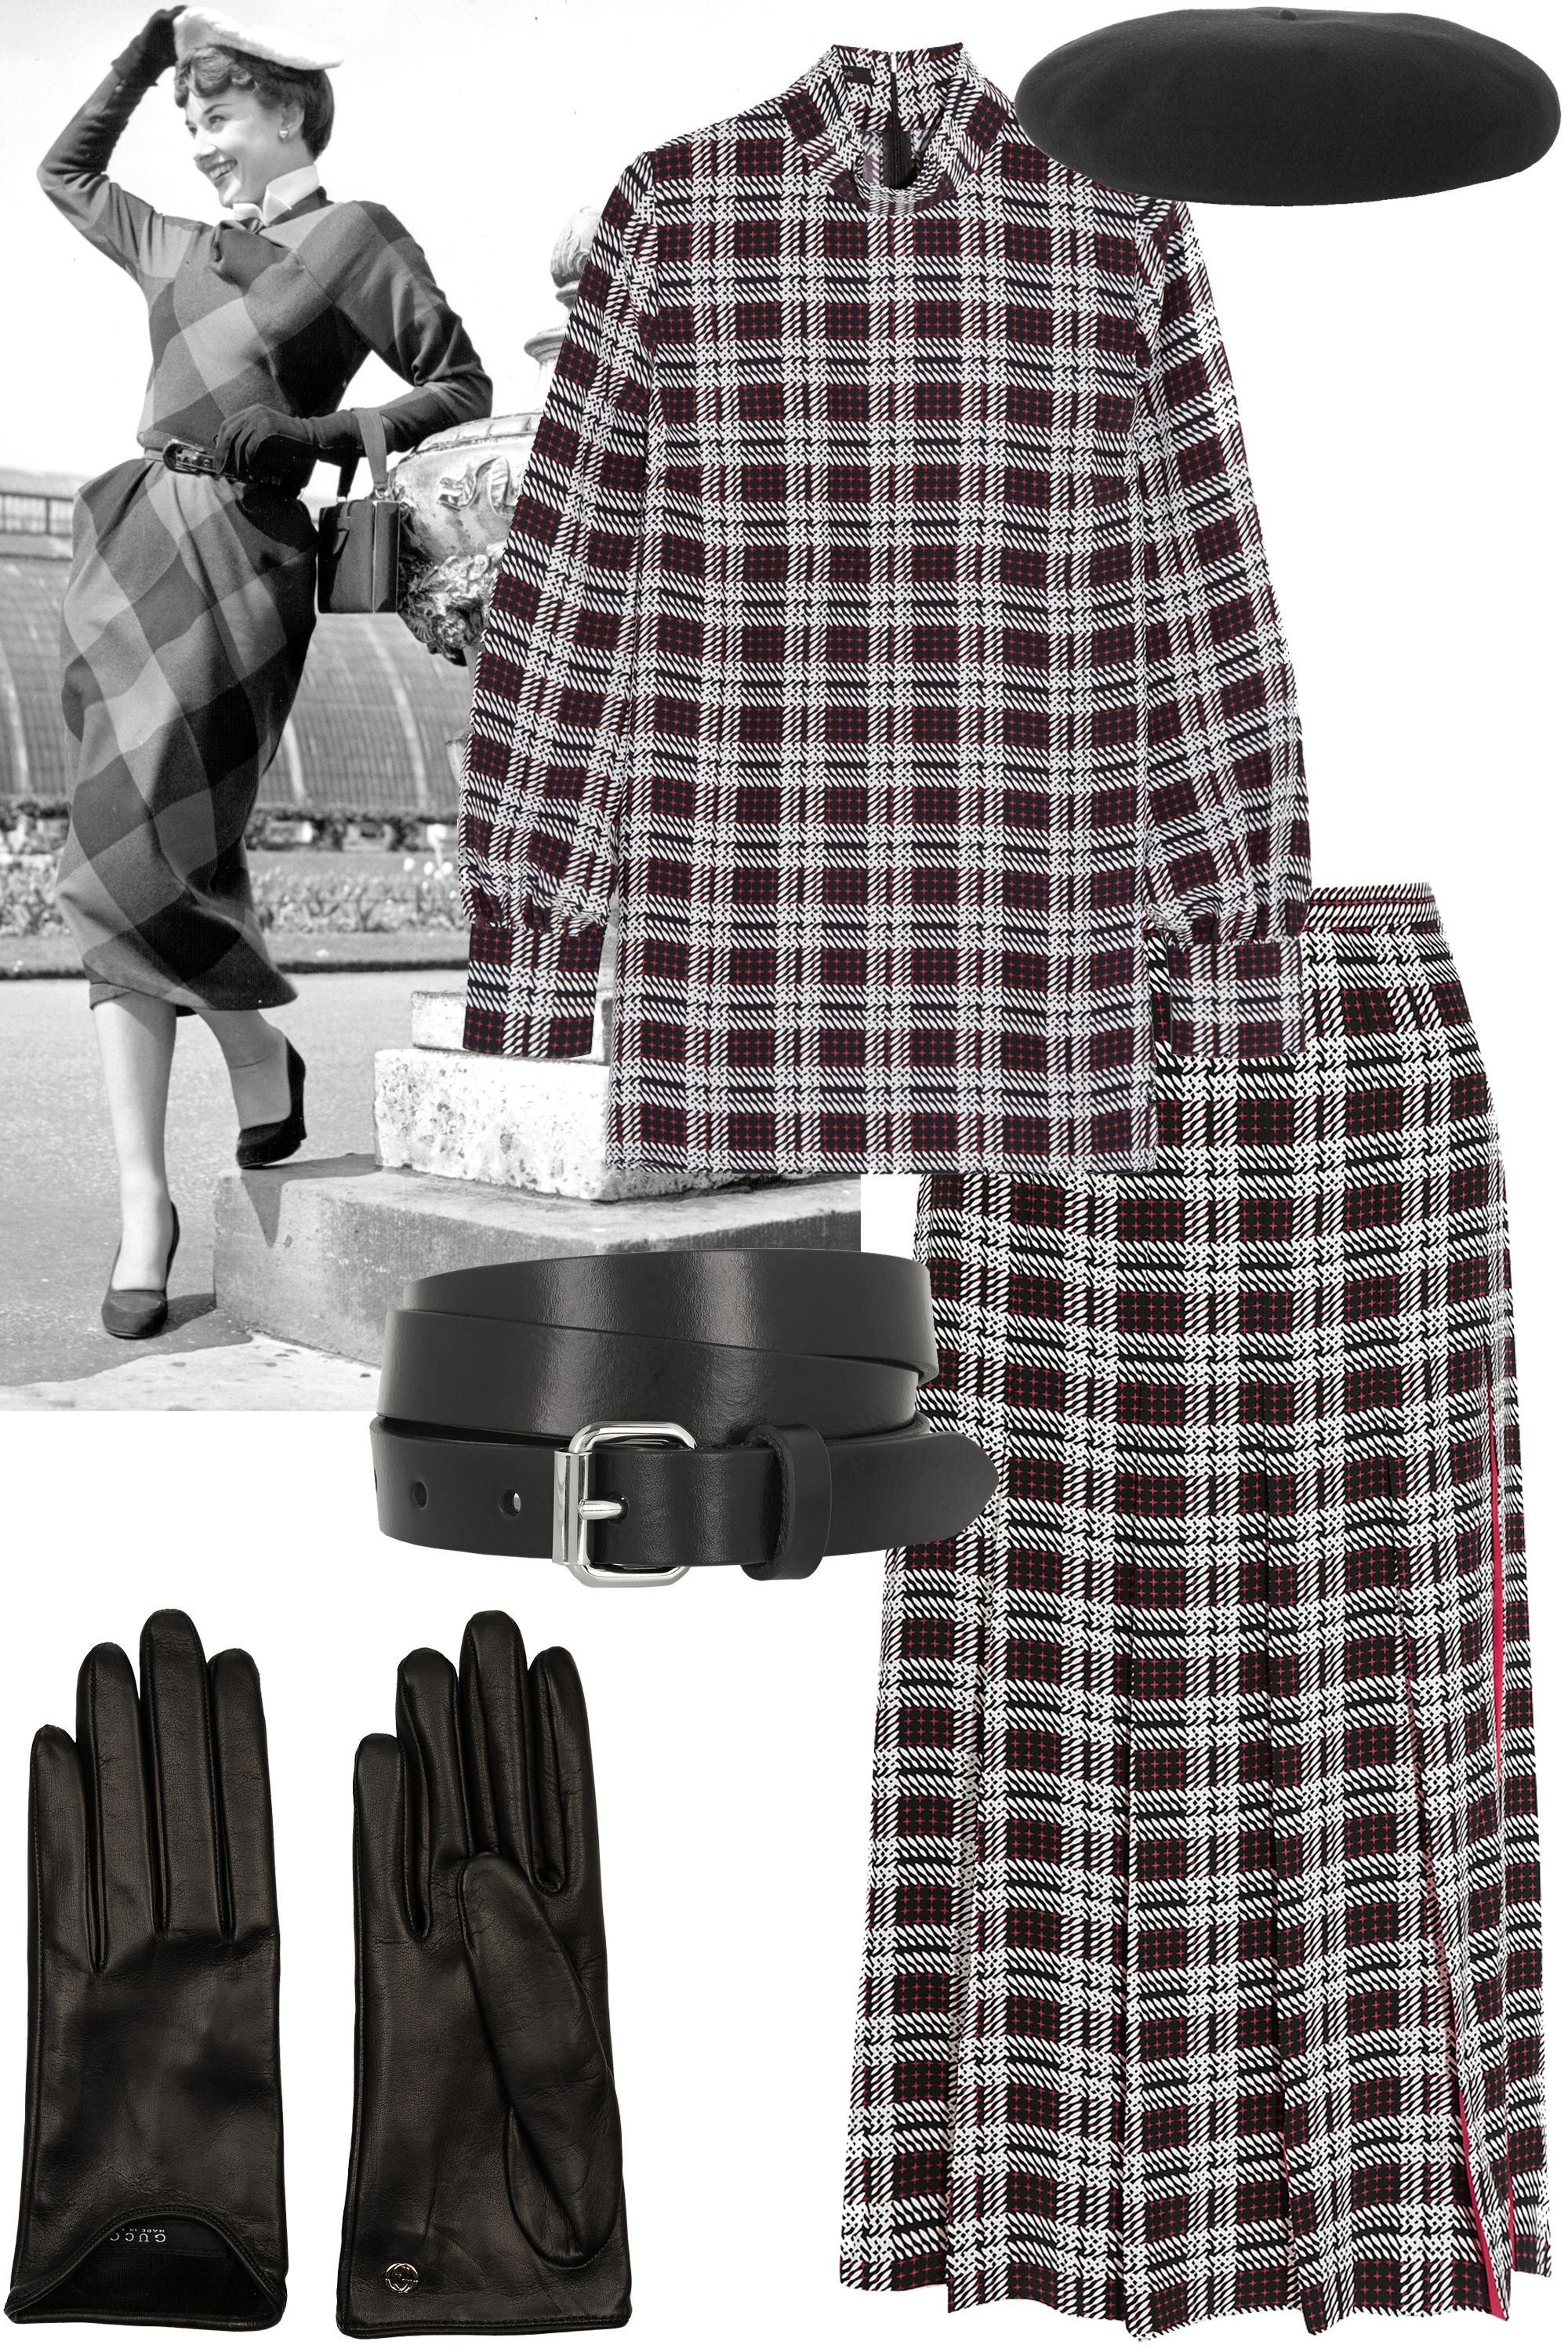 "<p>Plaid set + belt + beret + gloves</p><p><strong>Mother of Pearl</strong> top, $495, <a href=""http://www.net-a-porter.com/us/en/product/583078/Mother_of_Pearl/allen-printed-silk-top"">net-a-porter.com</a>; <strong>Mother of Pearl </strong>skirt, $695, <a href=""http://www.net-a-porter.com/us/en/product/583079/Mother_of_Pearl/dune-printed-silk-skirt"">net-a-porter.com</a>; <strong>Isabel Marant</strong> belt, $115, <a href=""http://www.net-a-porter.com/us/en/product/586359/Etoile_Isabel_Marant/romny-leather-belt"">net-a-porter.com</a>; <strong>Saint Laurent</strong> beret, $590, <a href=""http://www.net-a-porter.com/us/en/product/590734/Saint_Laurent/wool-felt-beret"" target=""_blank"">net-a-porter.com</a>; <strong>Gucci</strong> gloves, $425, <a href=""http://www.net-a-porter.com/us/en/product/504059/Gucci/leather-gloves"">net-a-porter.com</a>.</p>"